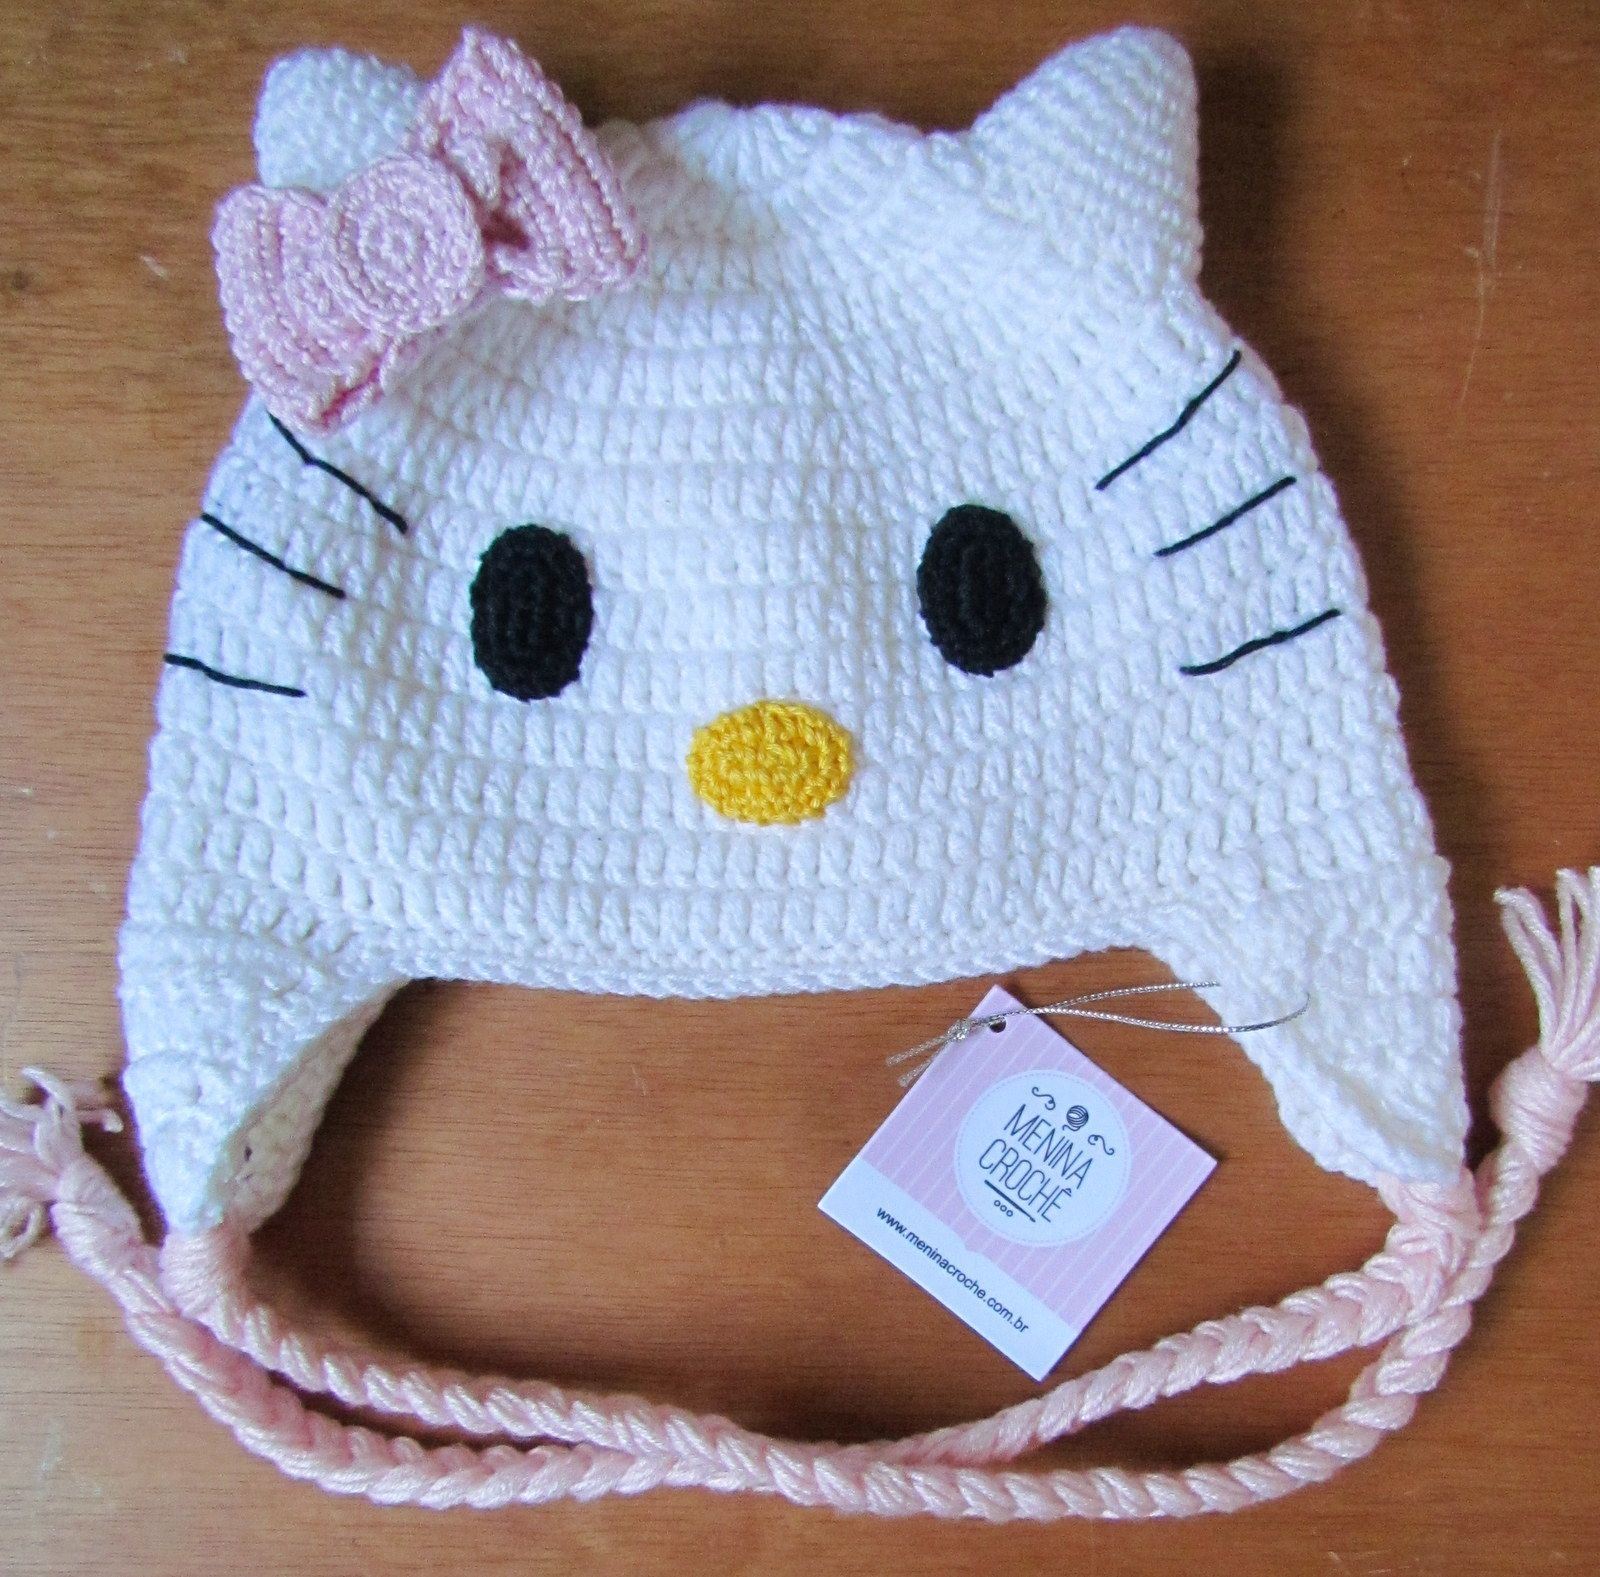 Touca crochê Hello Kitty | Toucas | Pinterest | Häkelmützen, Mütze ...